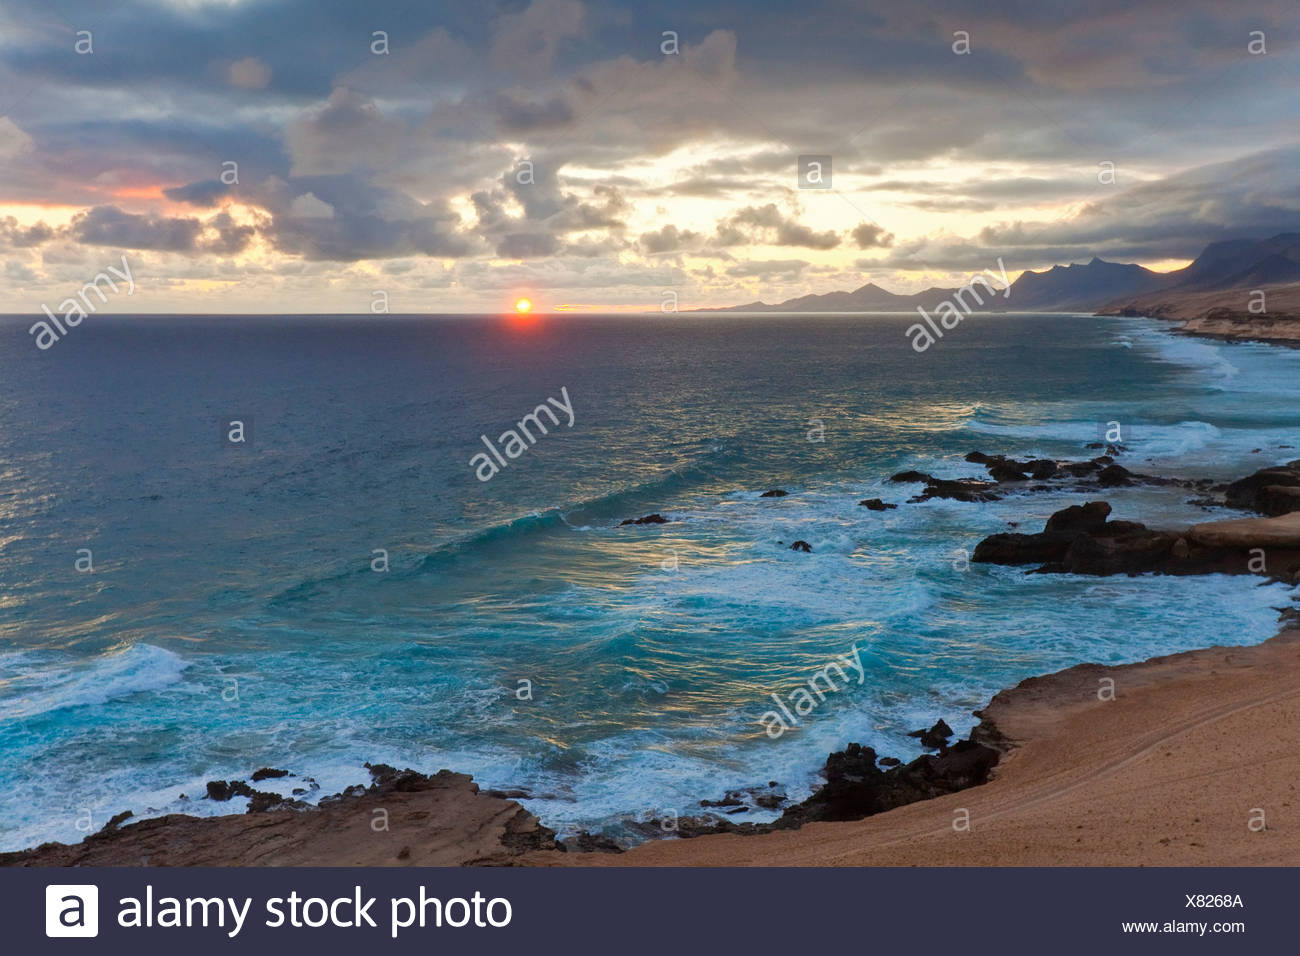 Coast of Costa Calma at sunset, Fuerteventura, Spain - Stock Image